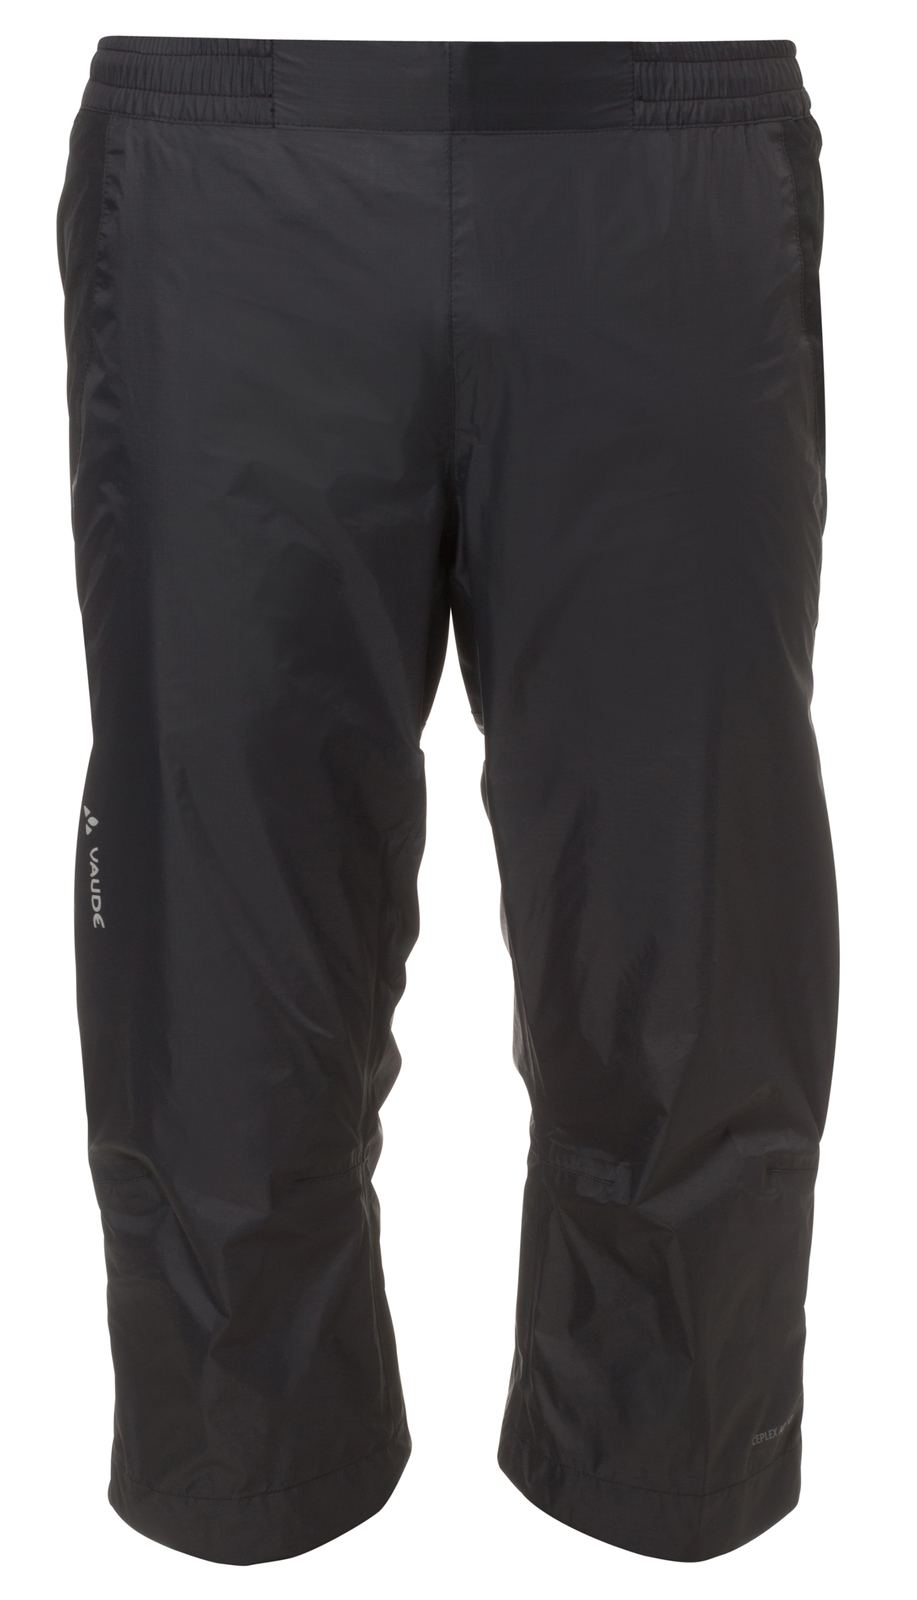 VAUDE Men´s Spray 3/4 Pants III black Größe XXXL - schneider-sports